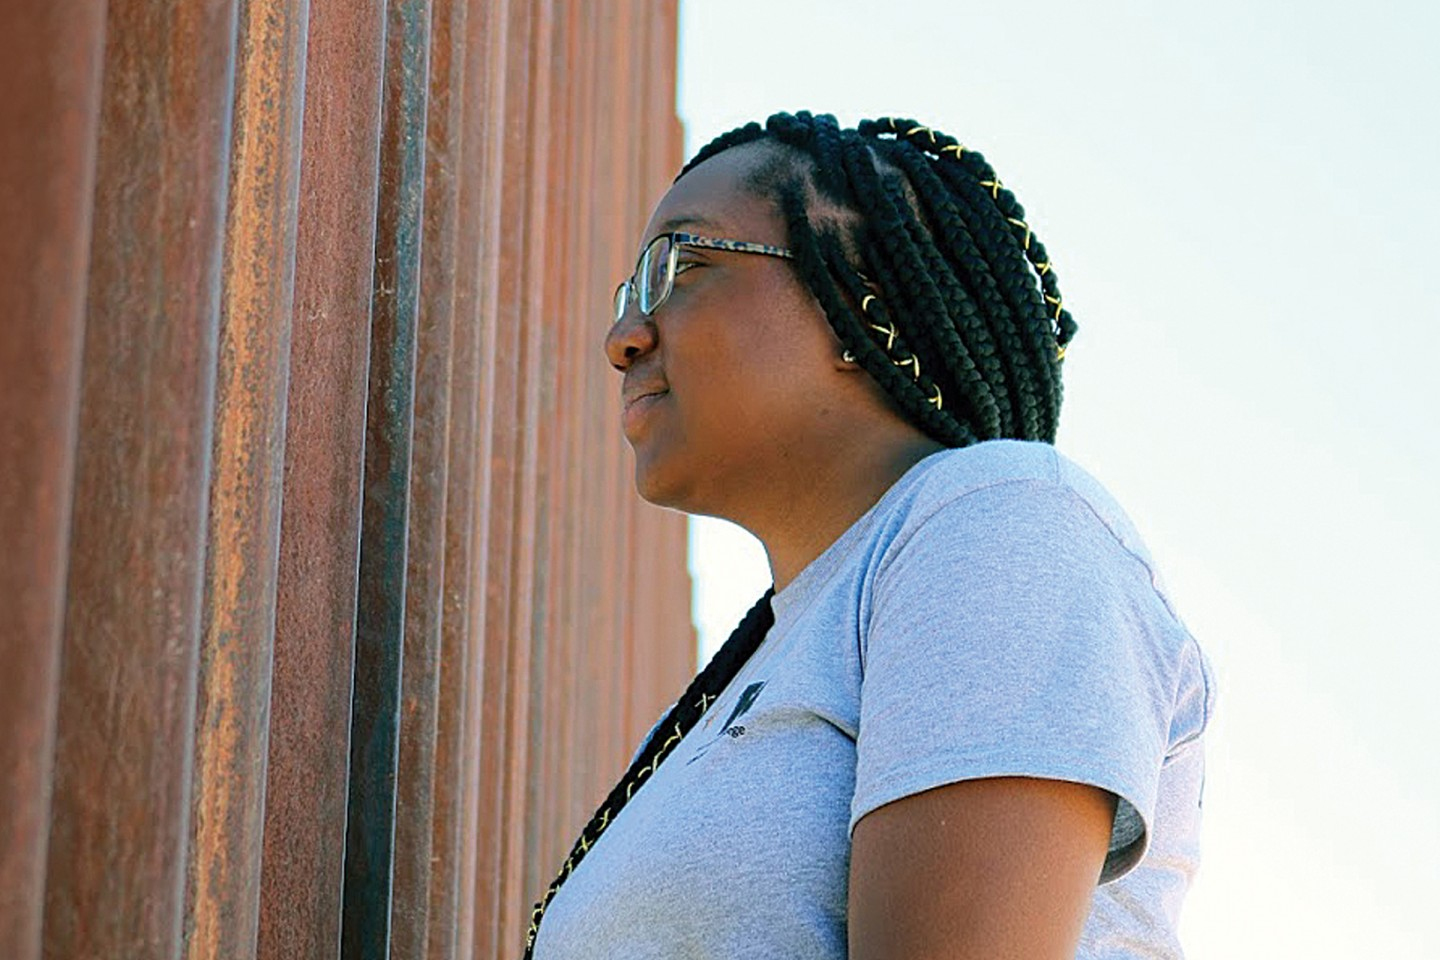 A student looks through the fence at the U.S.-Mexico border.